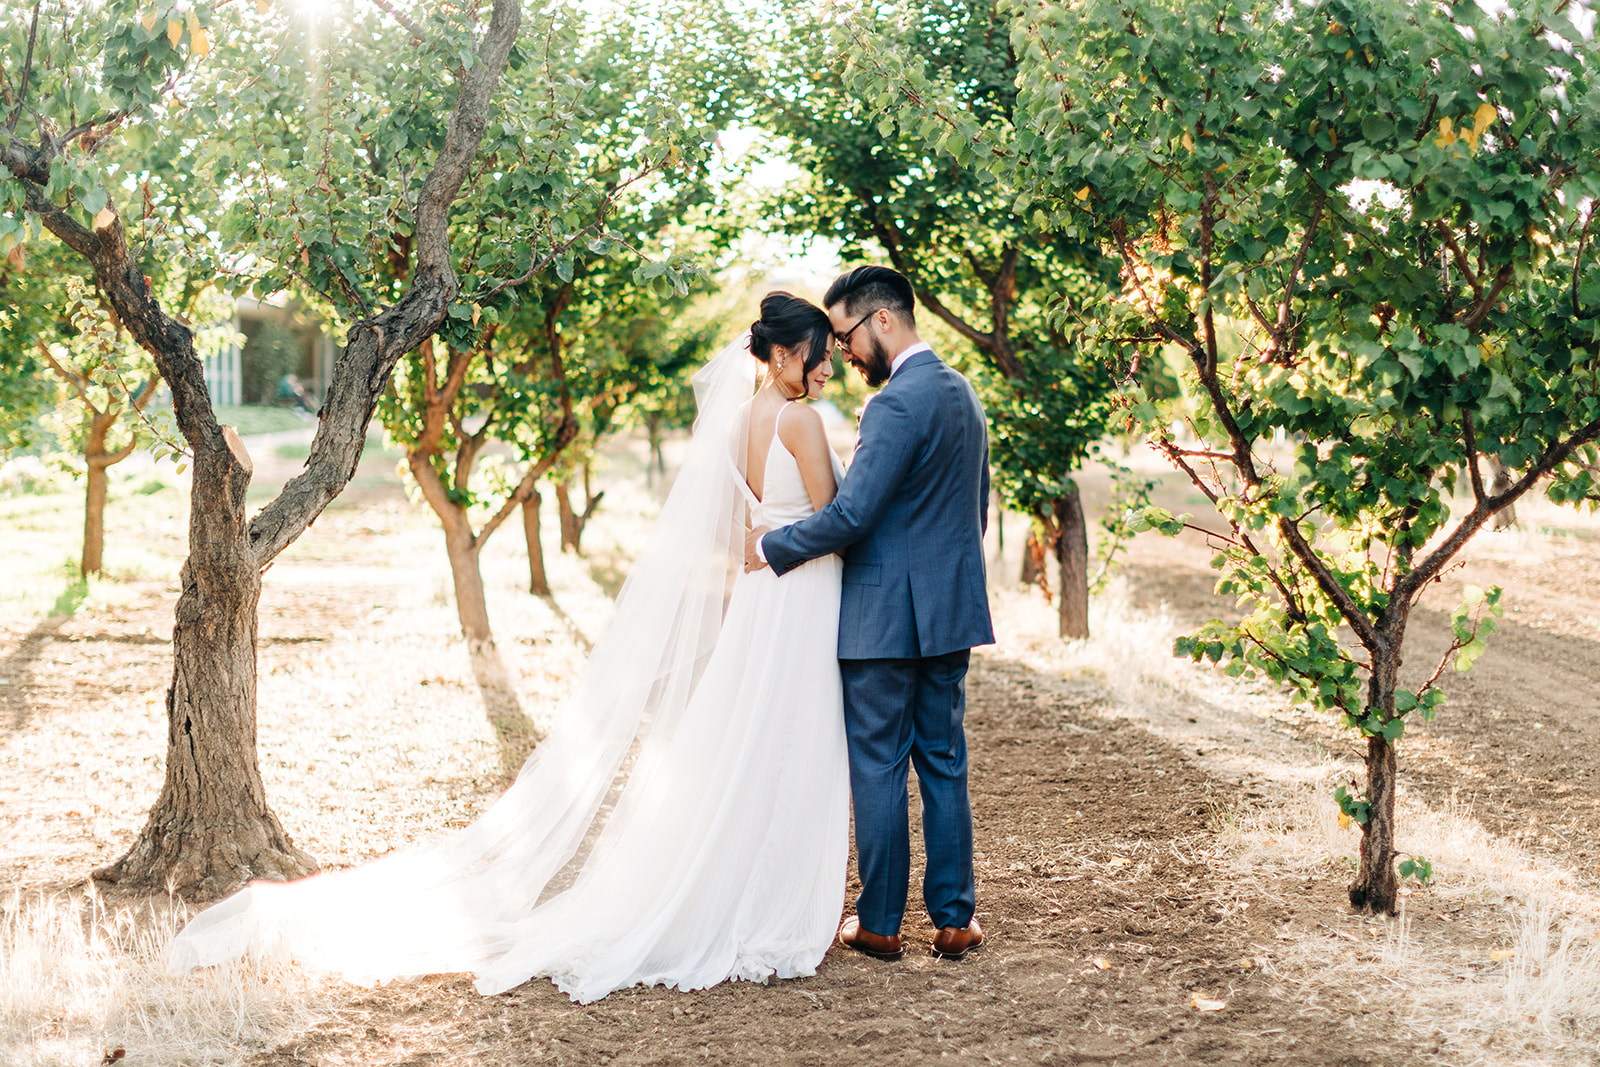 Los-Altos-History-Museum-Wedding_Orange-County-Wedding-Photographer_Clarisse-Rae-Photo-Video_79